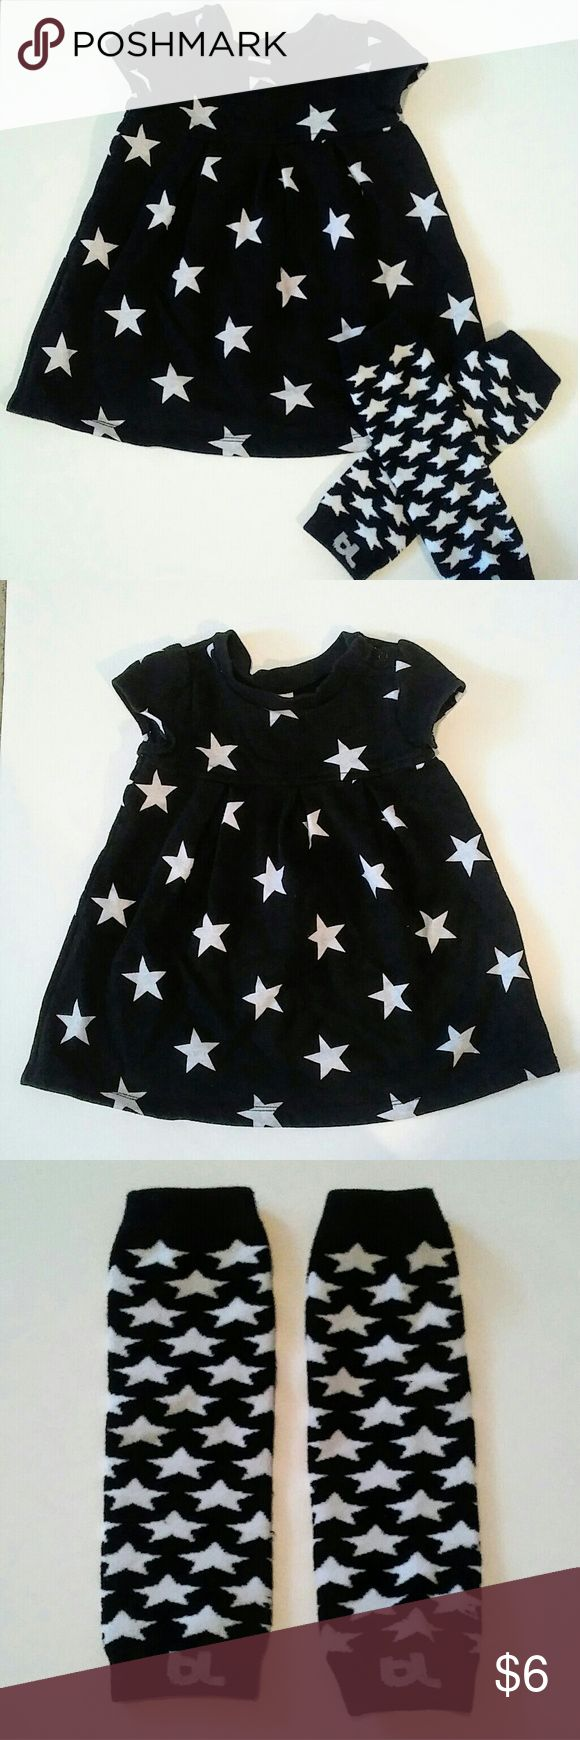 "Old Navy dress with leg warmers Adorable black and white star dress in great used condition. No stains or holes. With free gift of ""Babylegs"" leg warmers. Black and white stars. Leg warmers are ""one size"" Old Navy Dresses"